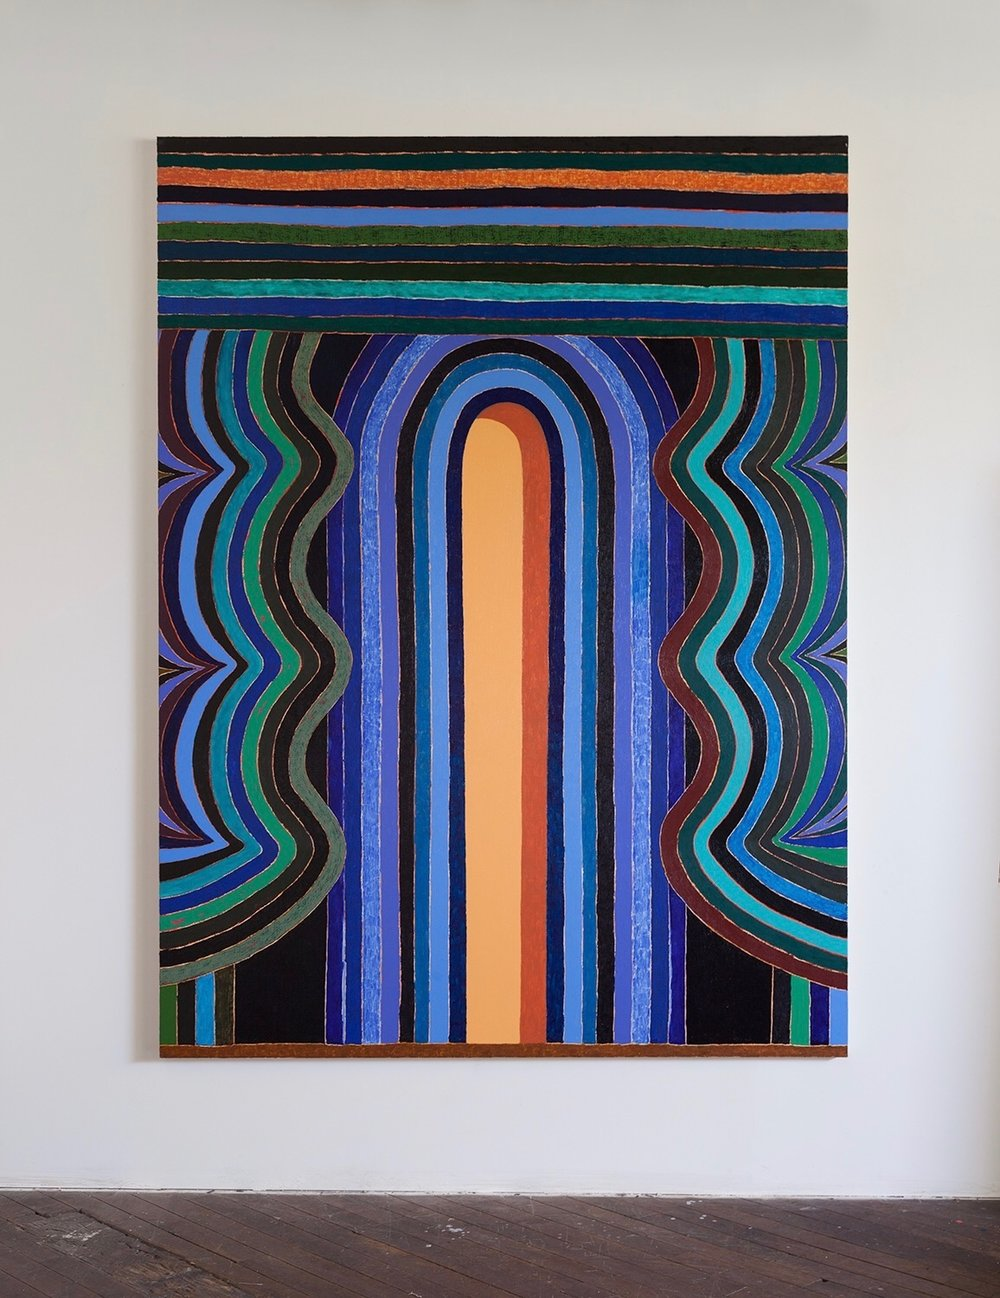 Matt Kleberg, Hypnobaby, 2017, oil stick on canvas, 96 x 72 inches